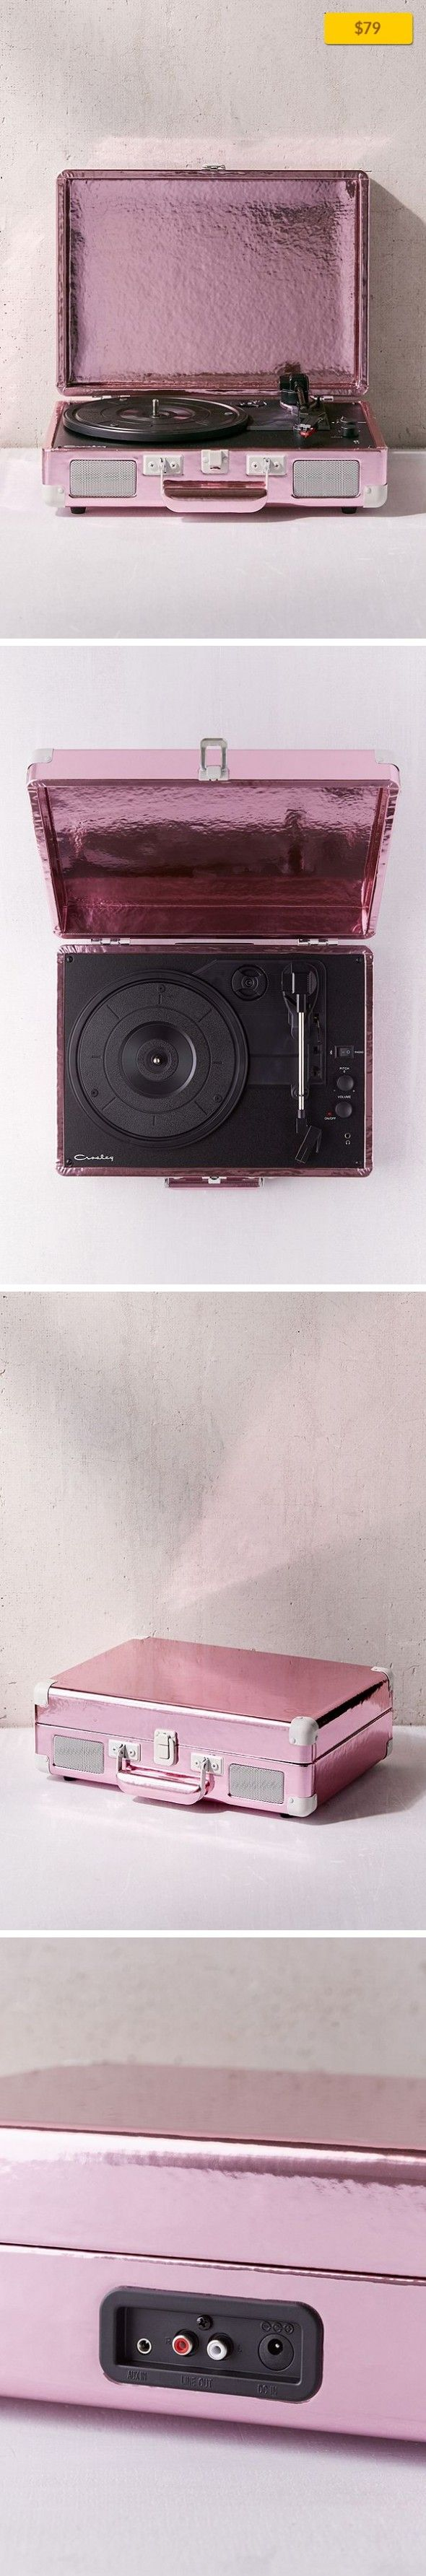 Crosley Pink Foil Cruiser Bluetooth Record Player Sale, Apartment Sale, Music + Tech   Bluetooth-compatible and vintage-inspired Crosley turntable, housed in a metallic pink portable briefcase available exclusively here at UO. This record player is perfect for playing your favorite vinyl LPs, and comes complete with a headphone jack, RCA audio out, and features dynamic, full-range stereo speakers....